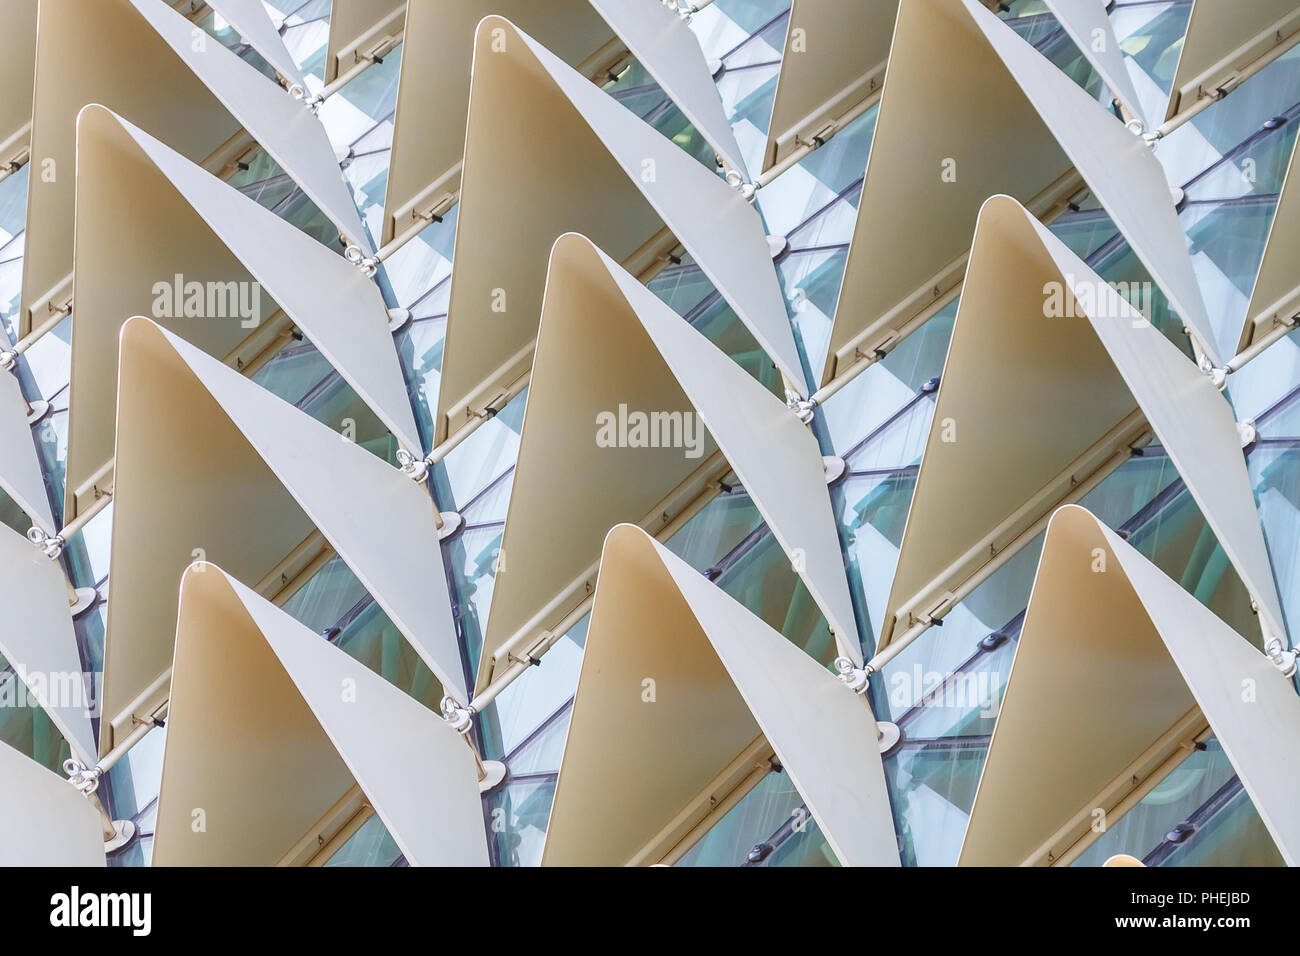 Protruding angles texture - Stock Image